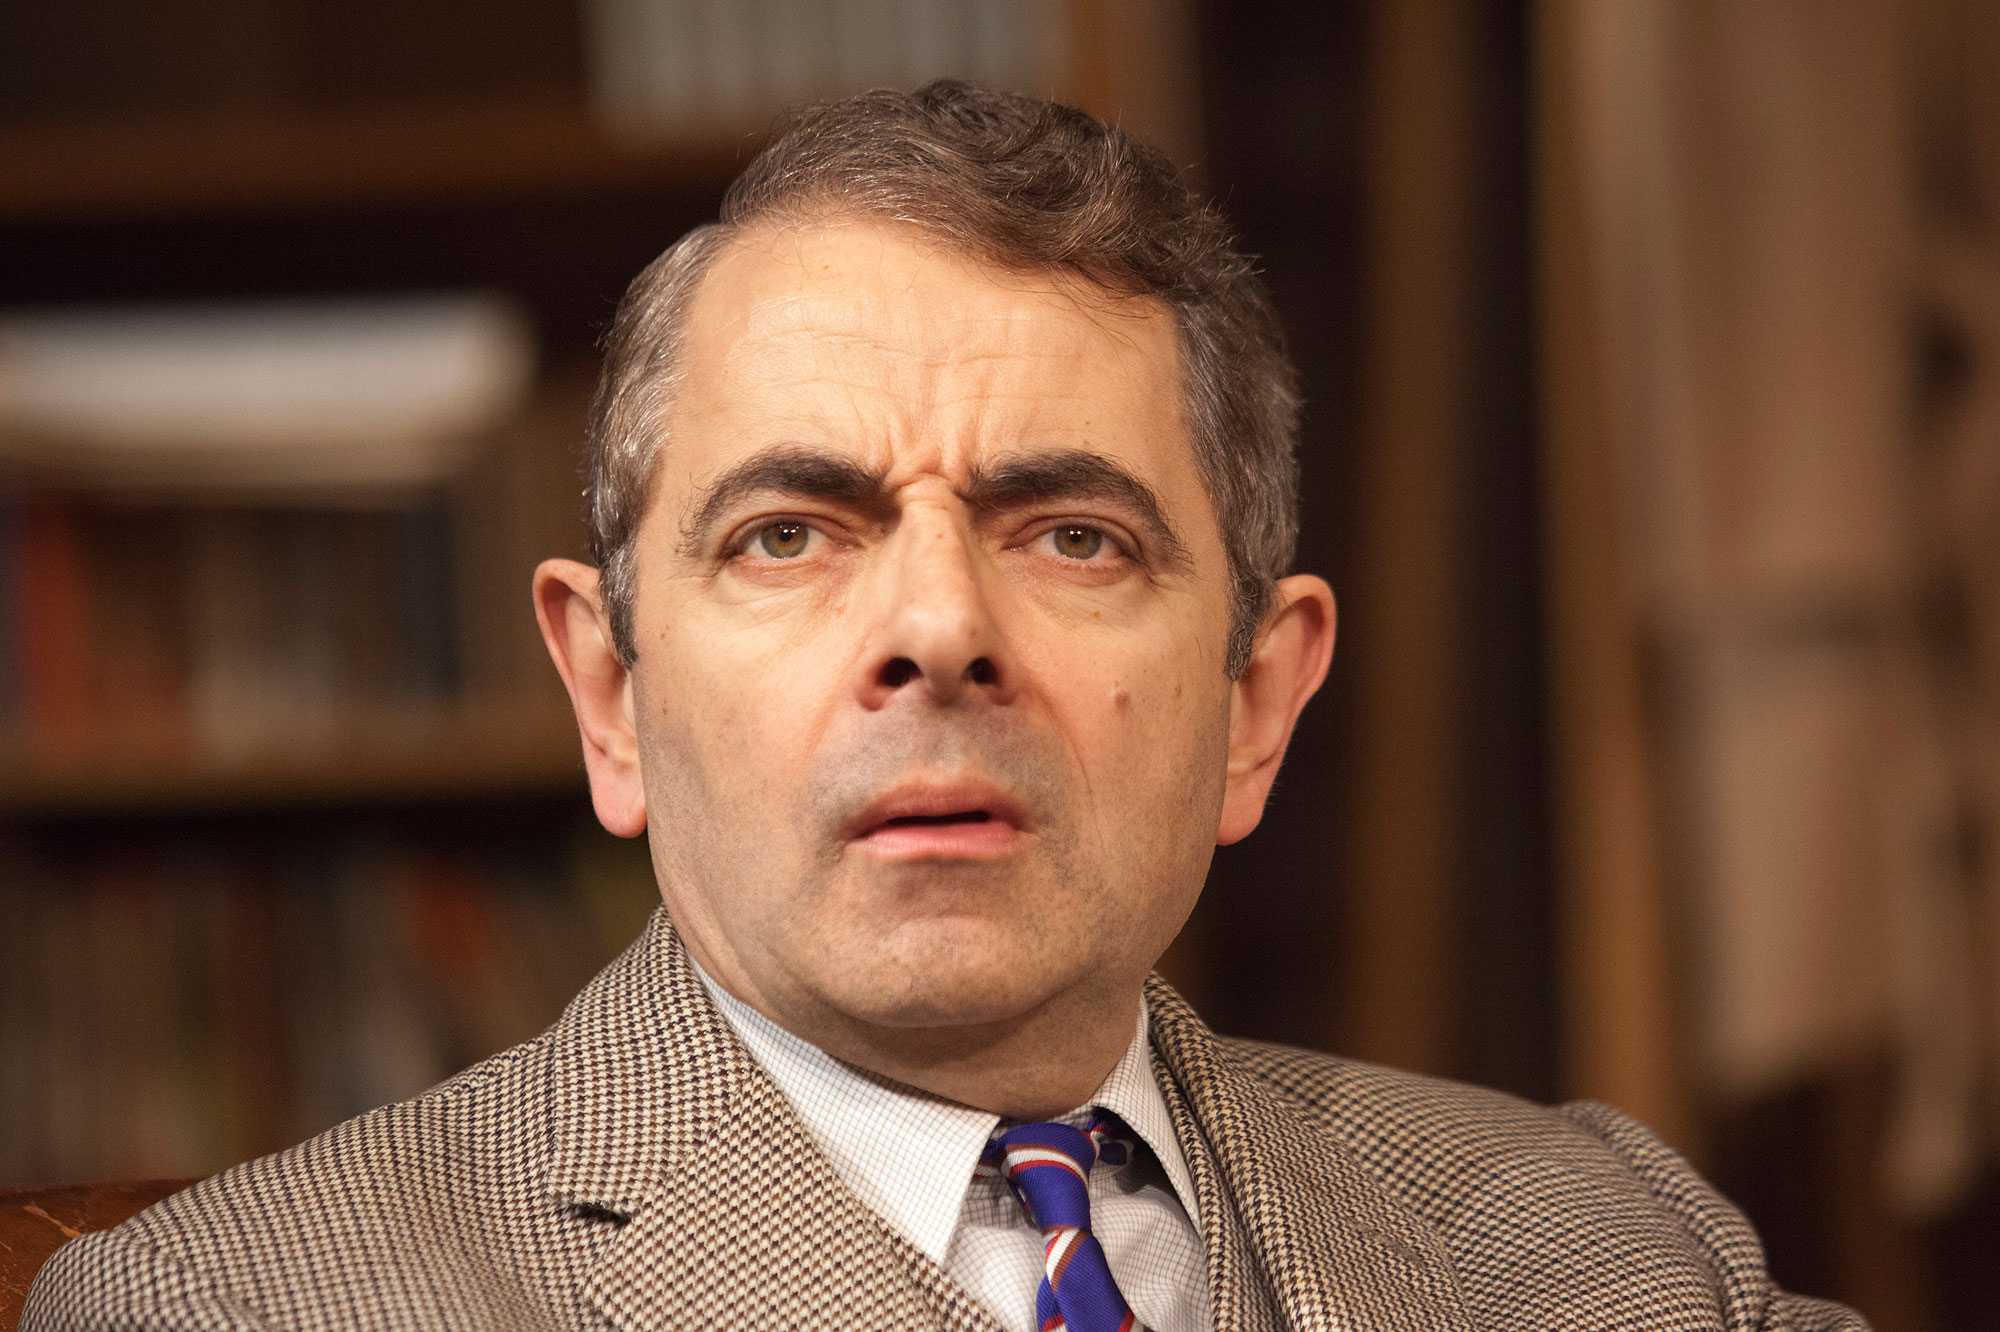 Rowan Atkinson HQ wallpapers